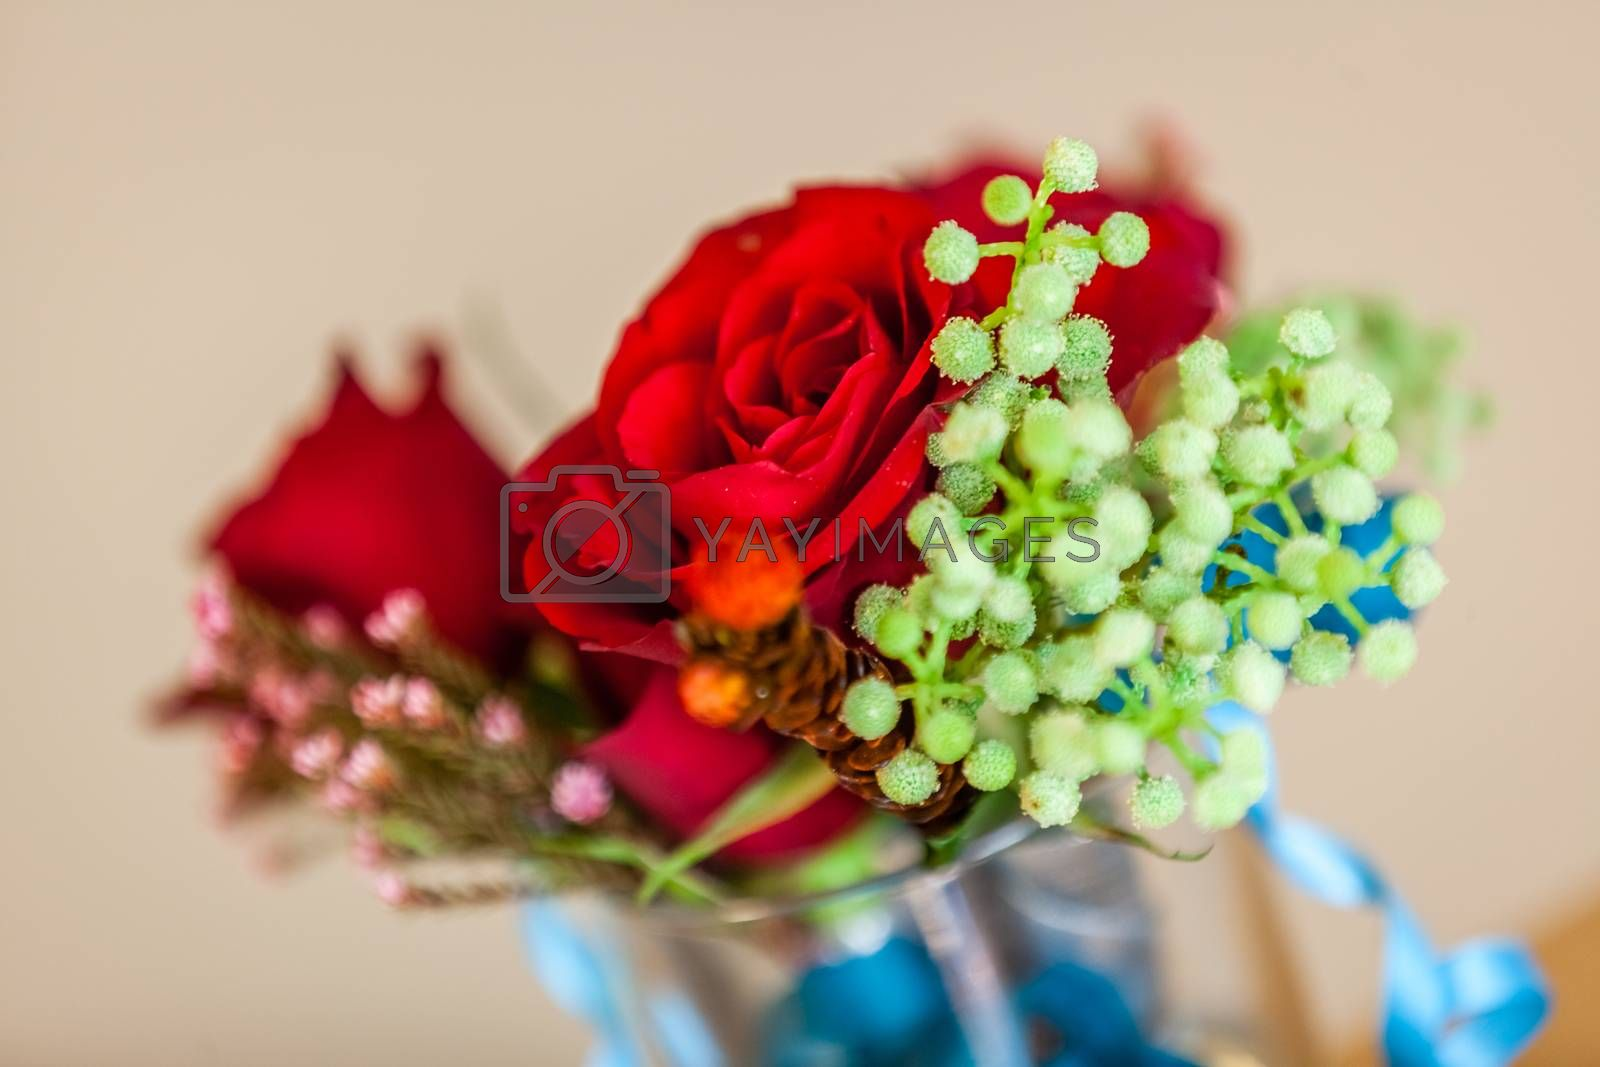 Red roses wedding bouquet in glass holder on table